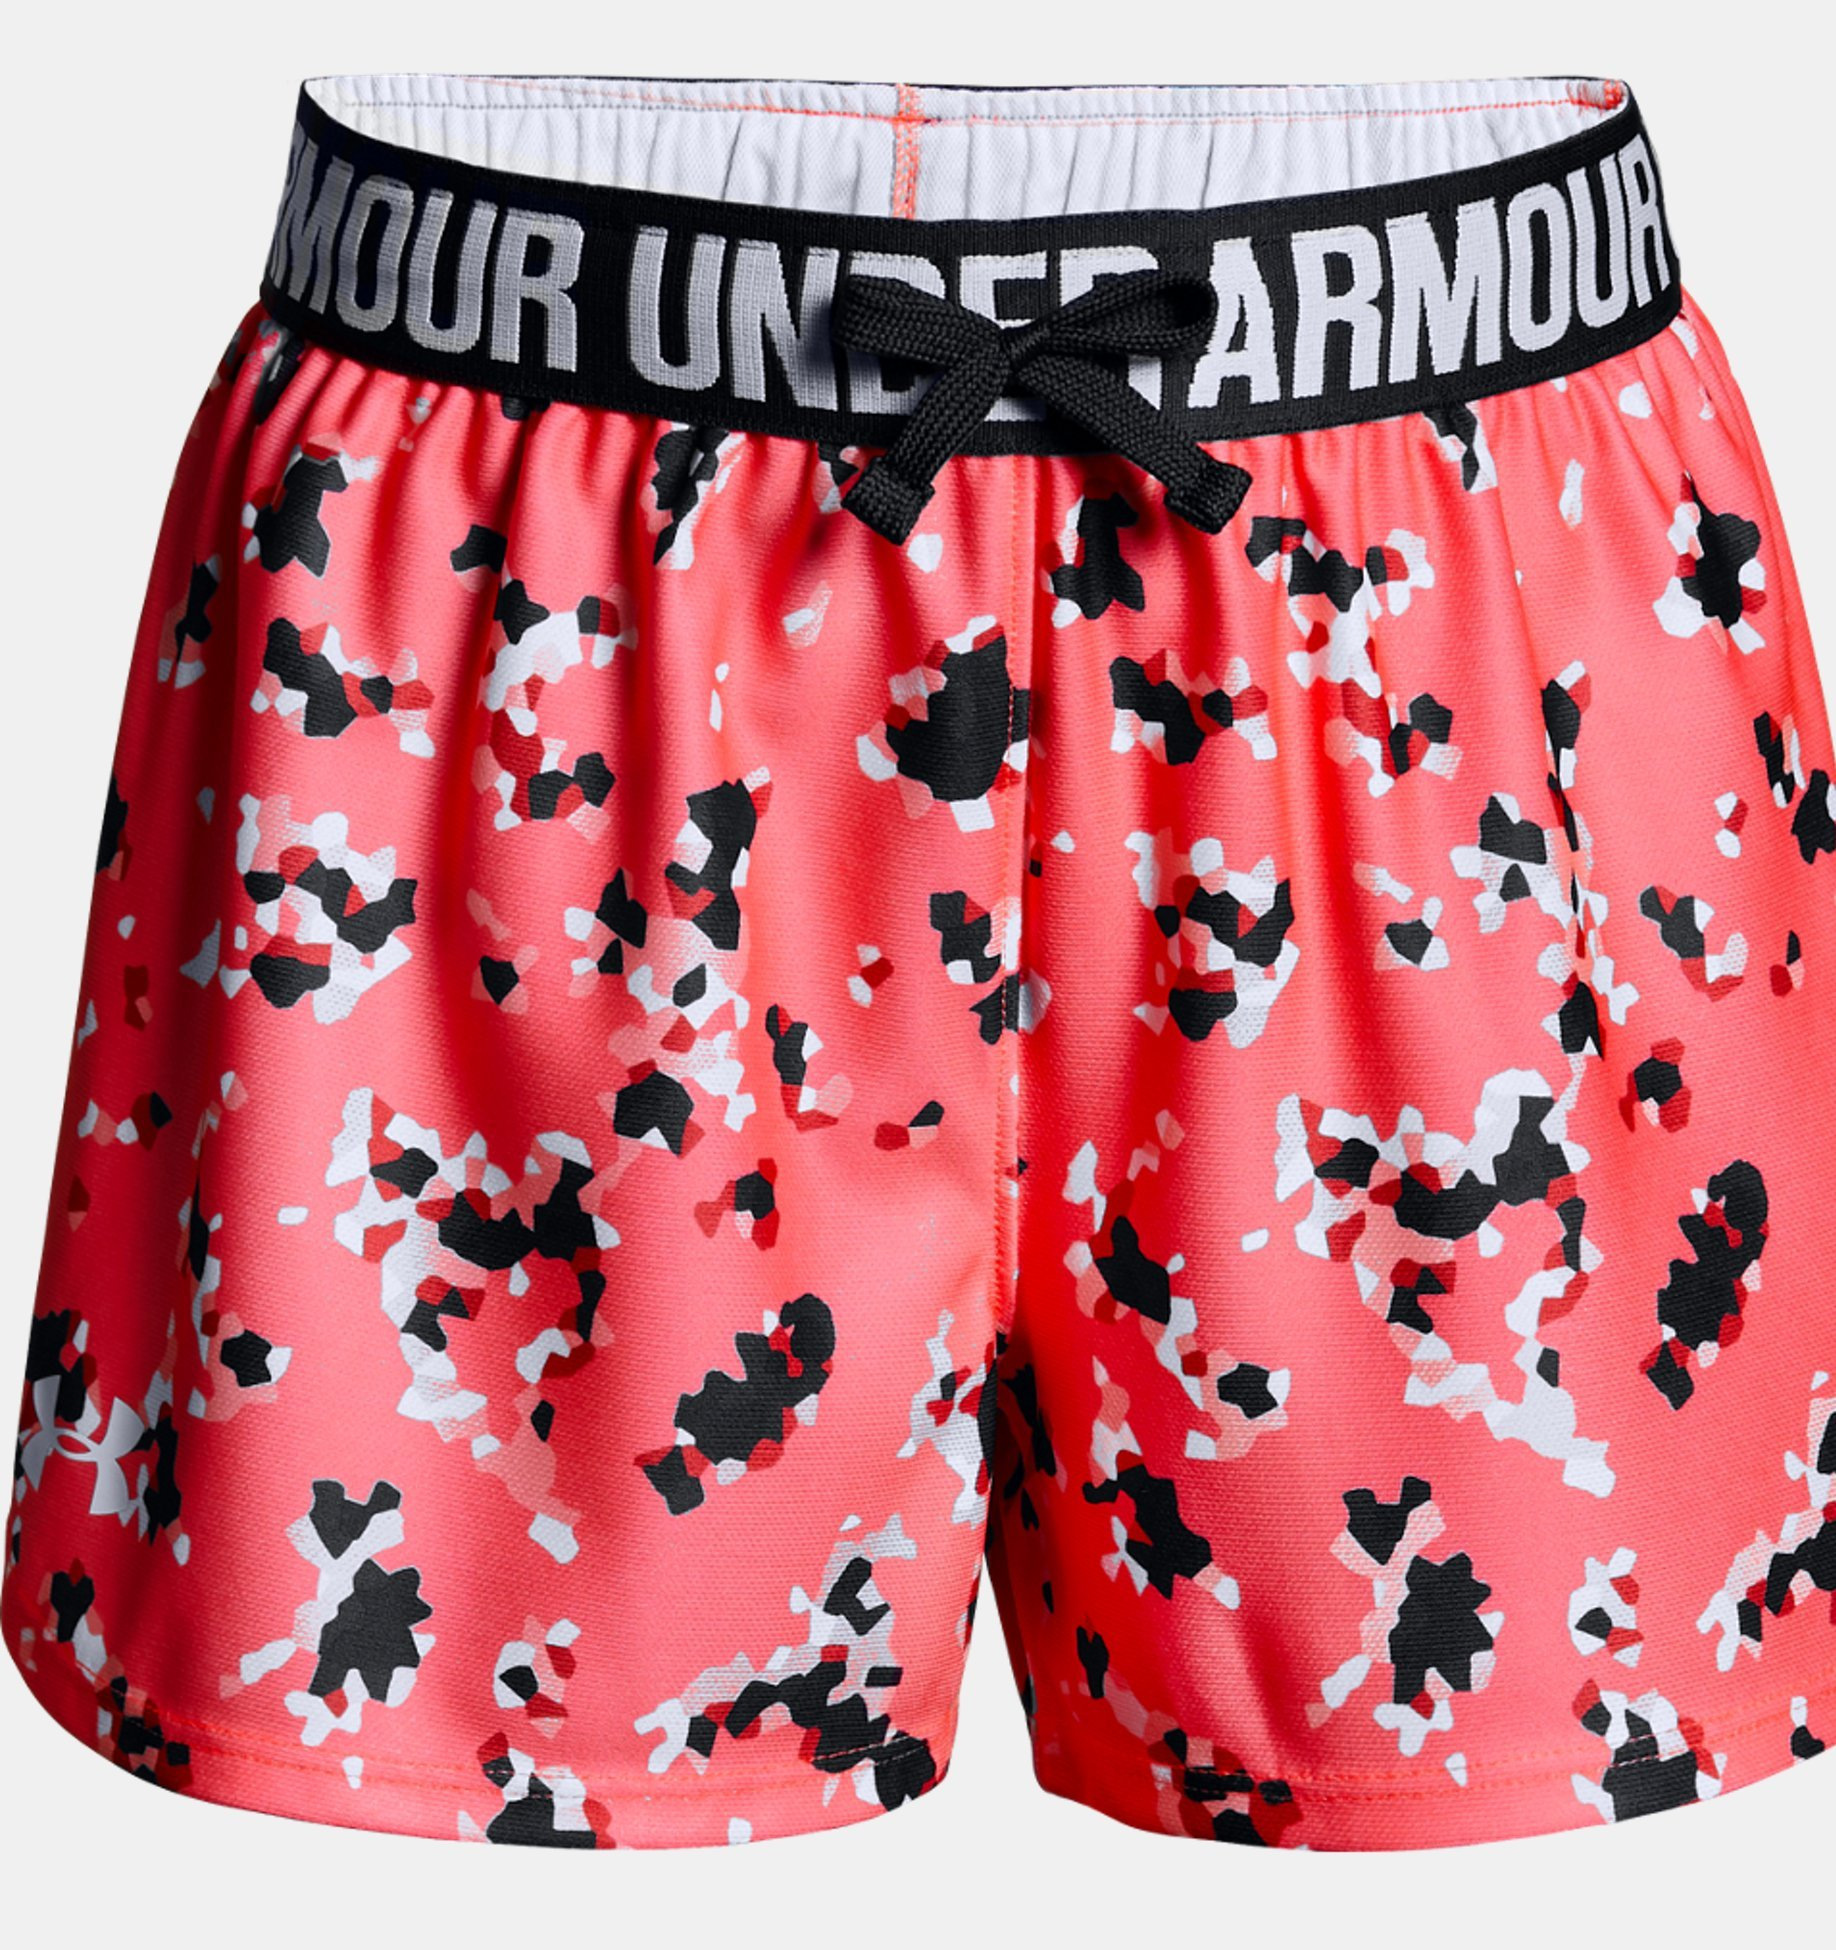 Under Armour Girls Play Up Printed Shorts, Brilliance /White, Youth X-Small